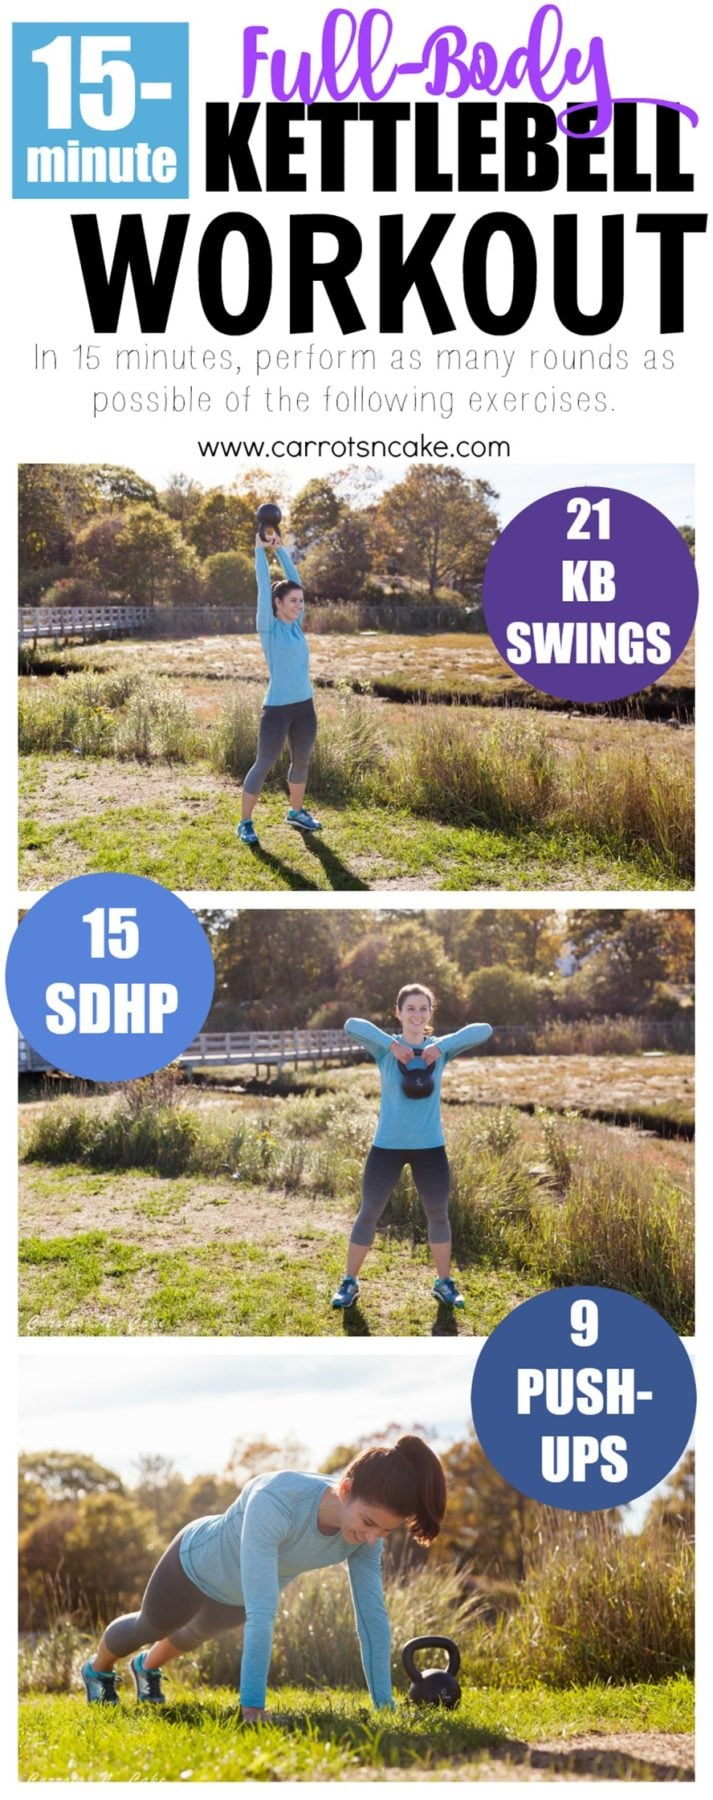 15-Minute Full-Body Kettlebell Workout